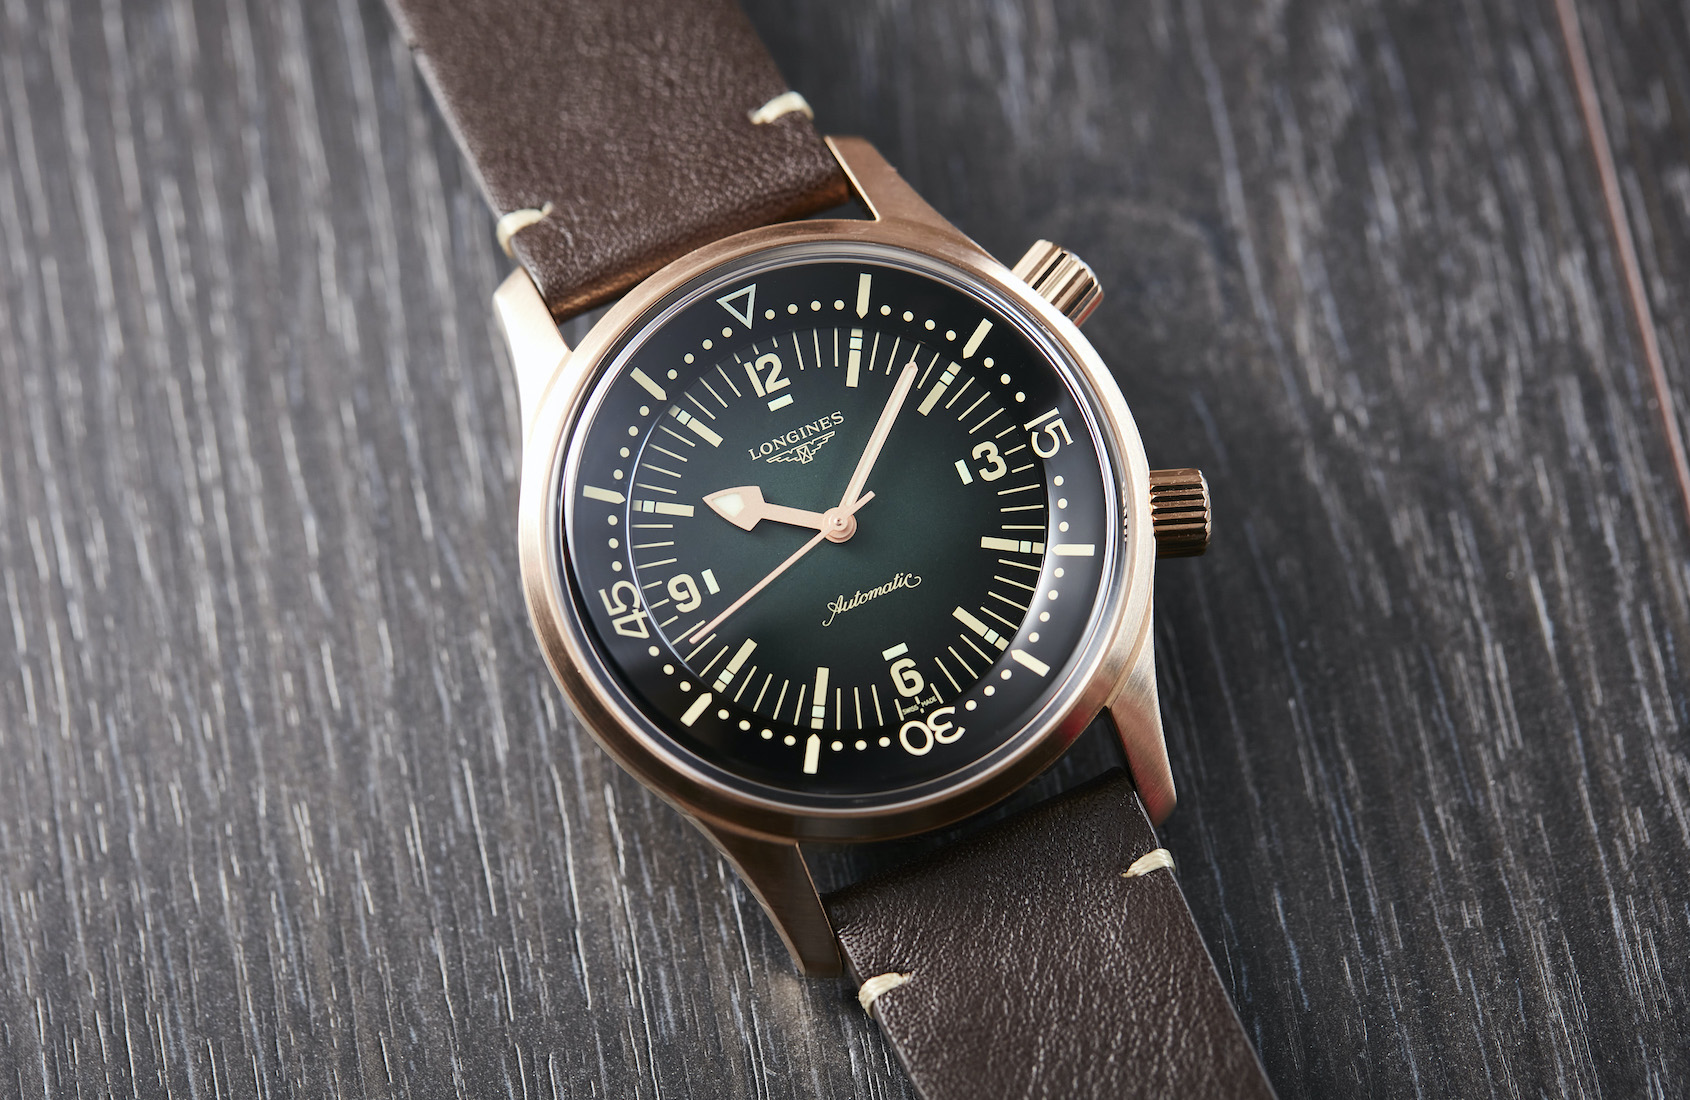 HANDS-ON: The Longines Legend Diver Bronze makes warm metals cool again